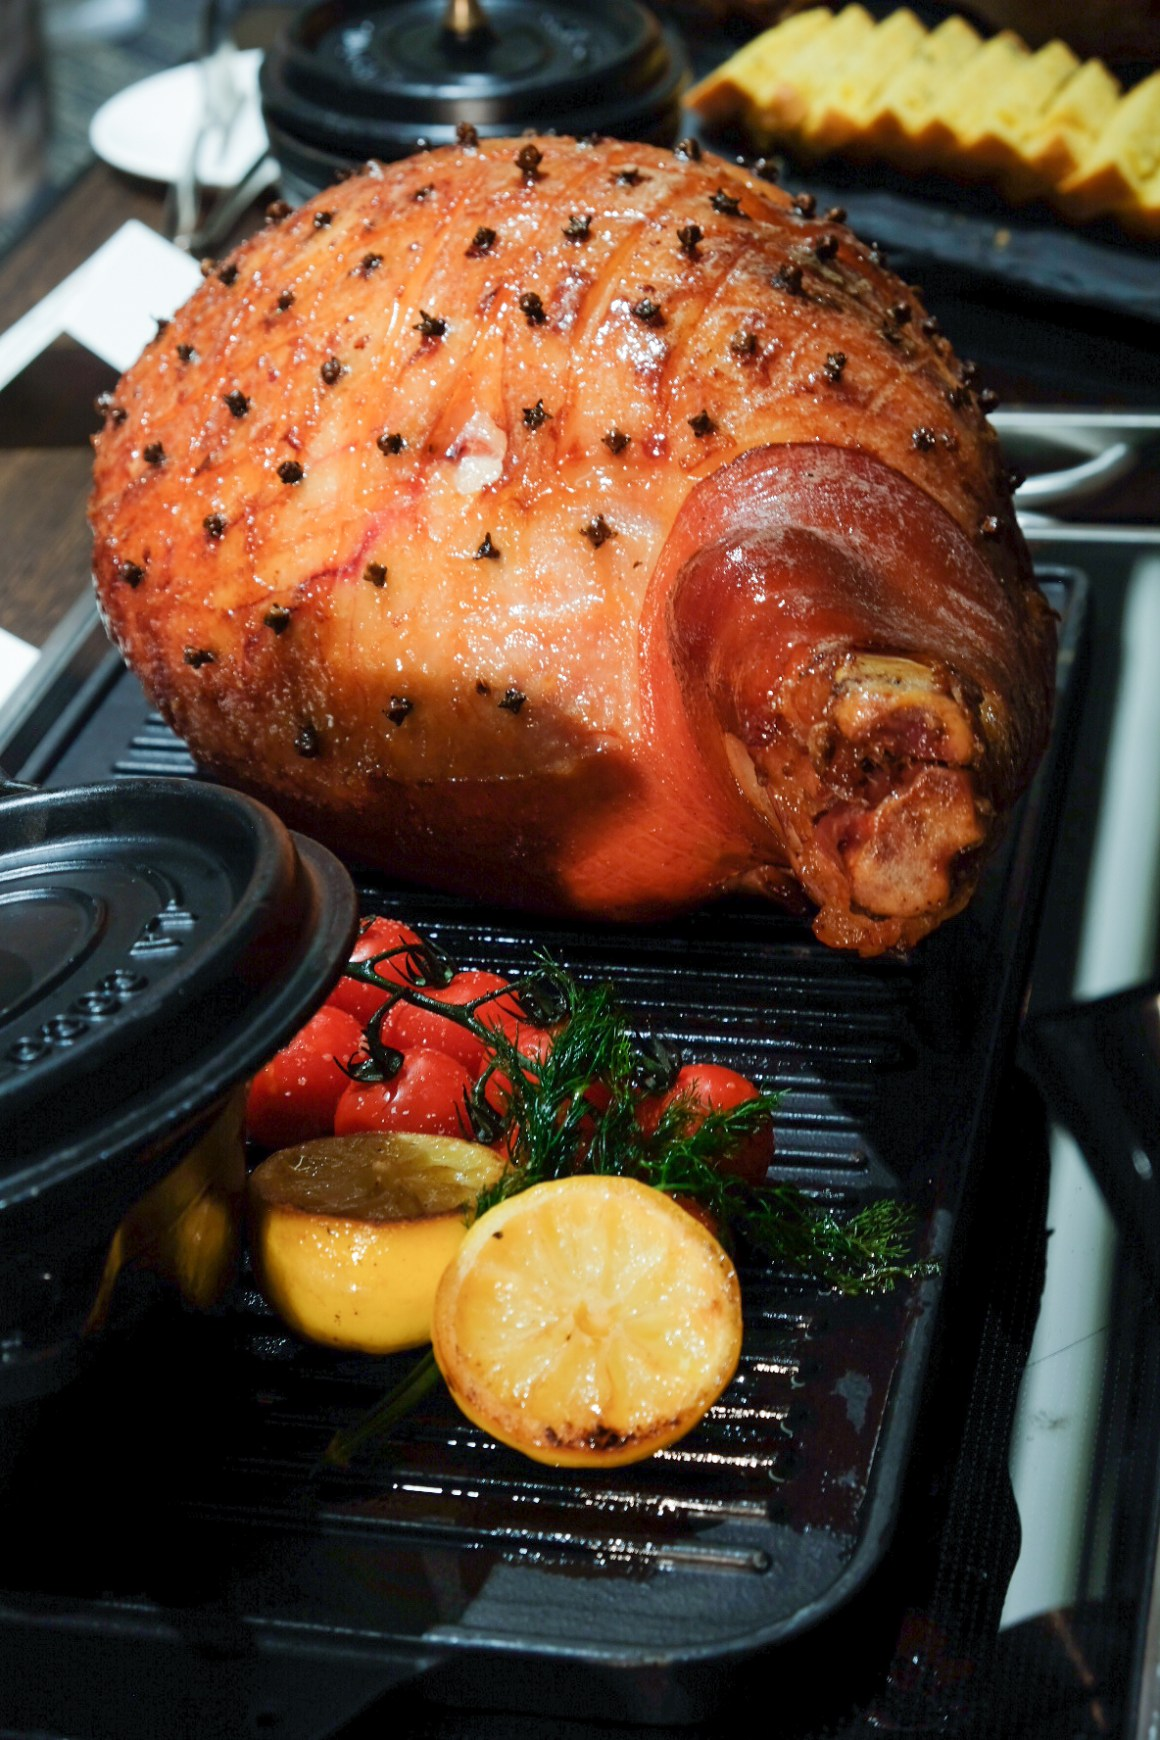 Christmas 2019, Dining & Takeaway - Honey & Clove Glazed Ham (Boneless) with Cinnamon Pineapple Sauce ($168)